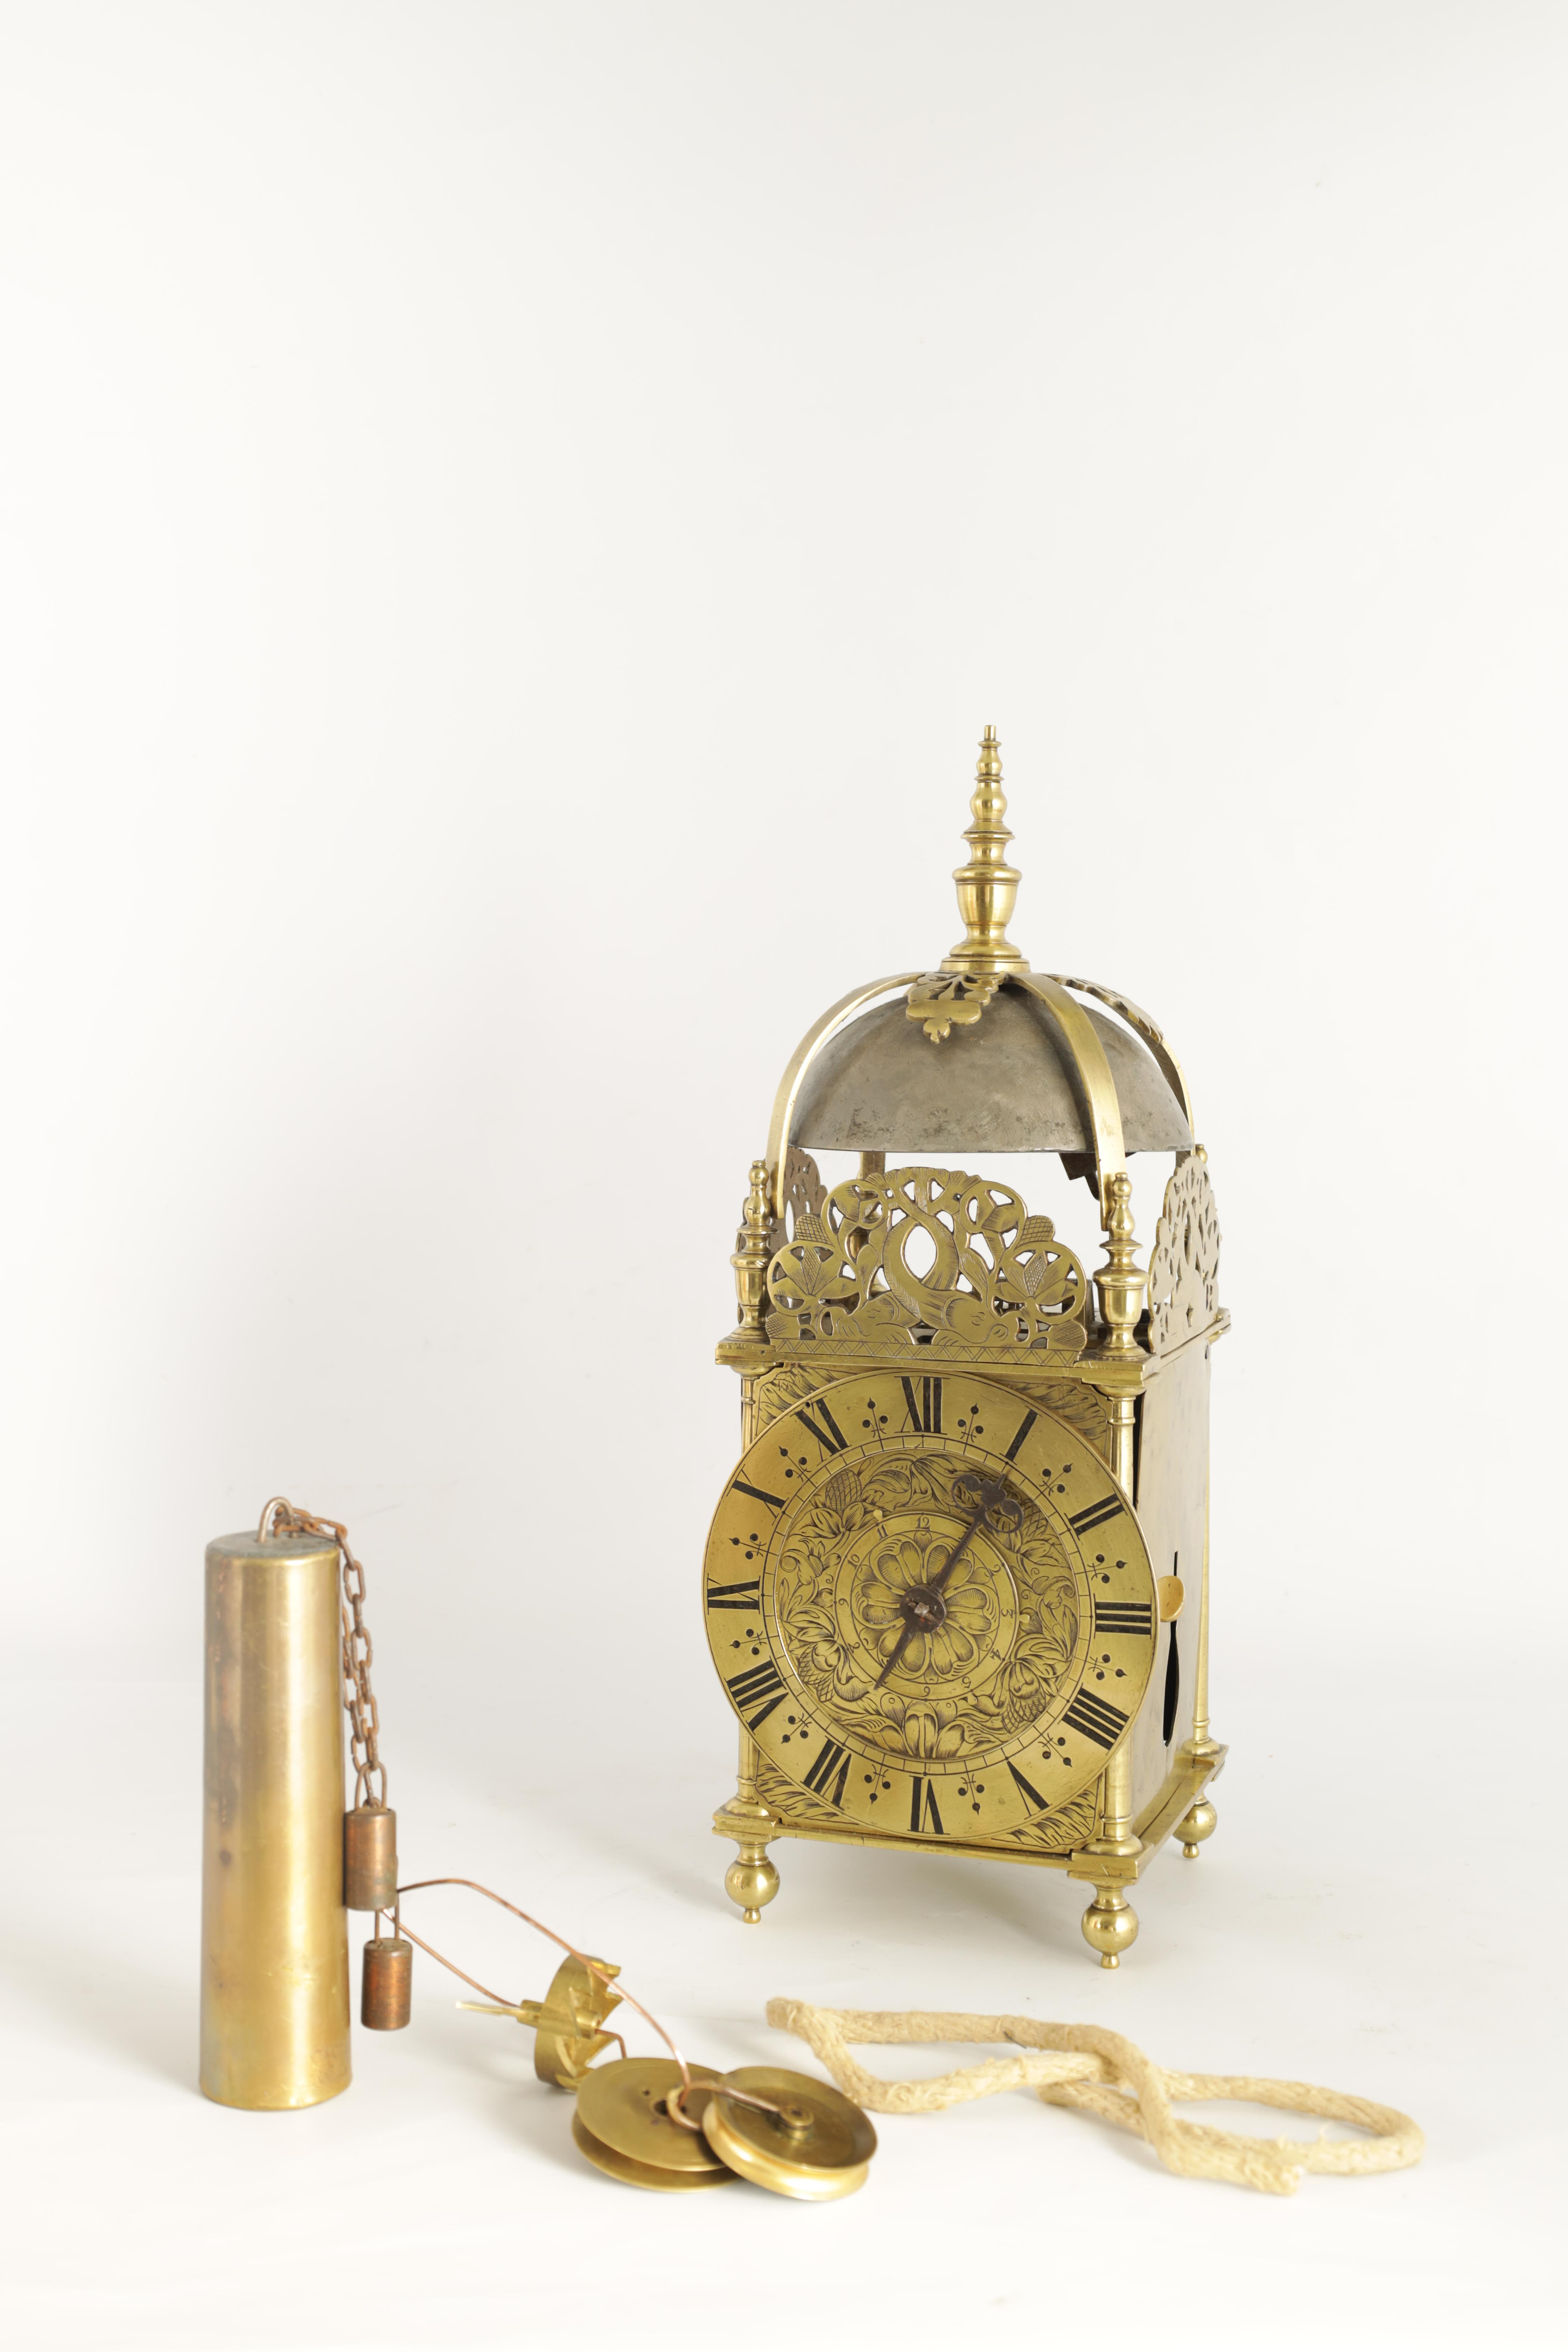 A FINE CHARLES II BRASS LANTERN CLOCKthe posted frame with side doors, engraved fretwork - Image 8 of 9